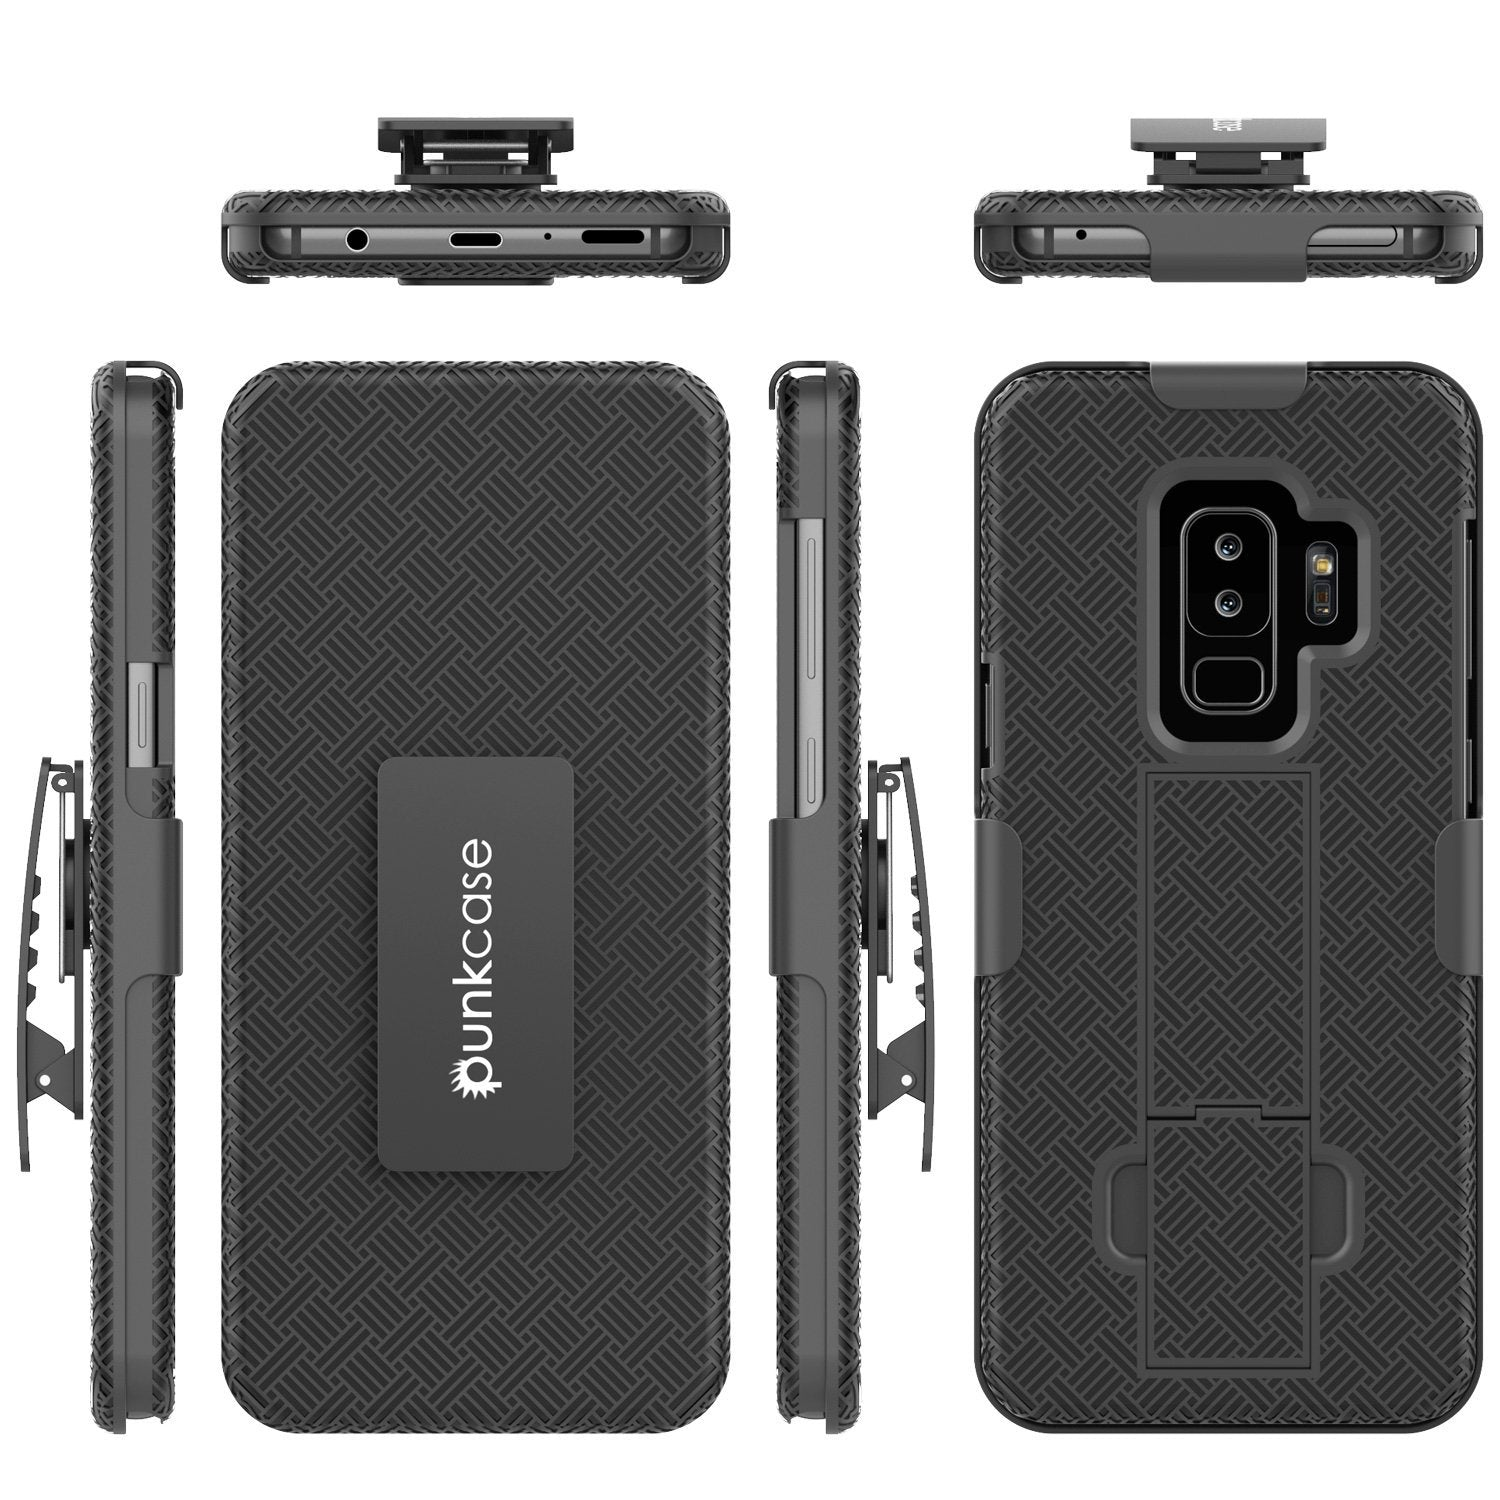 Punkcase Galaxy S9 PLUS Case With Screen Protector, Holster Belt Clip [Black]